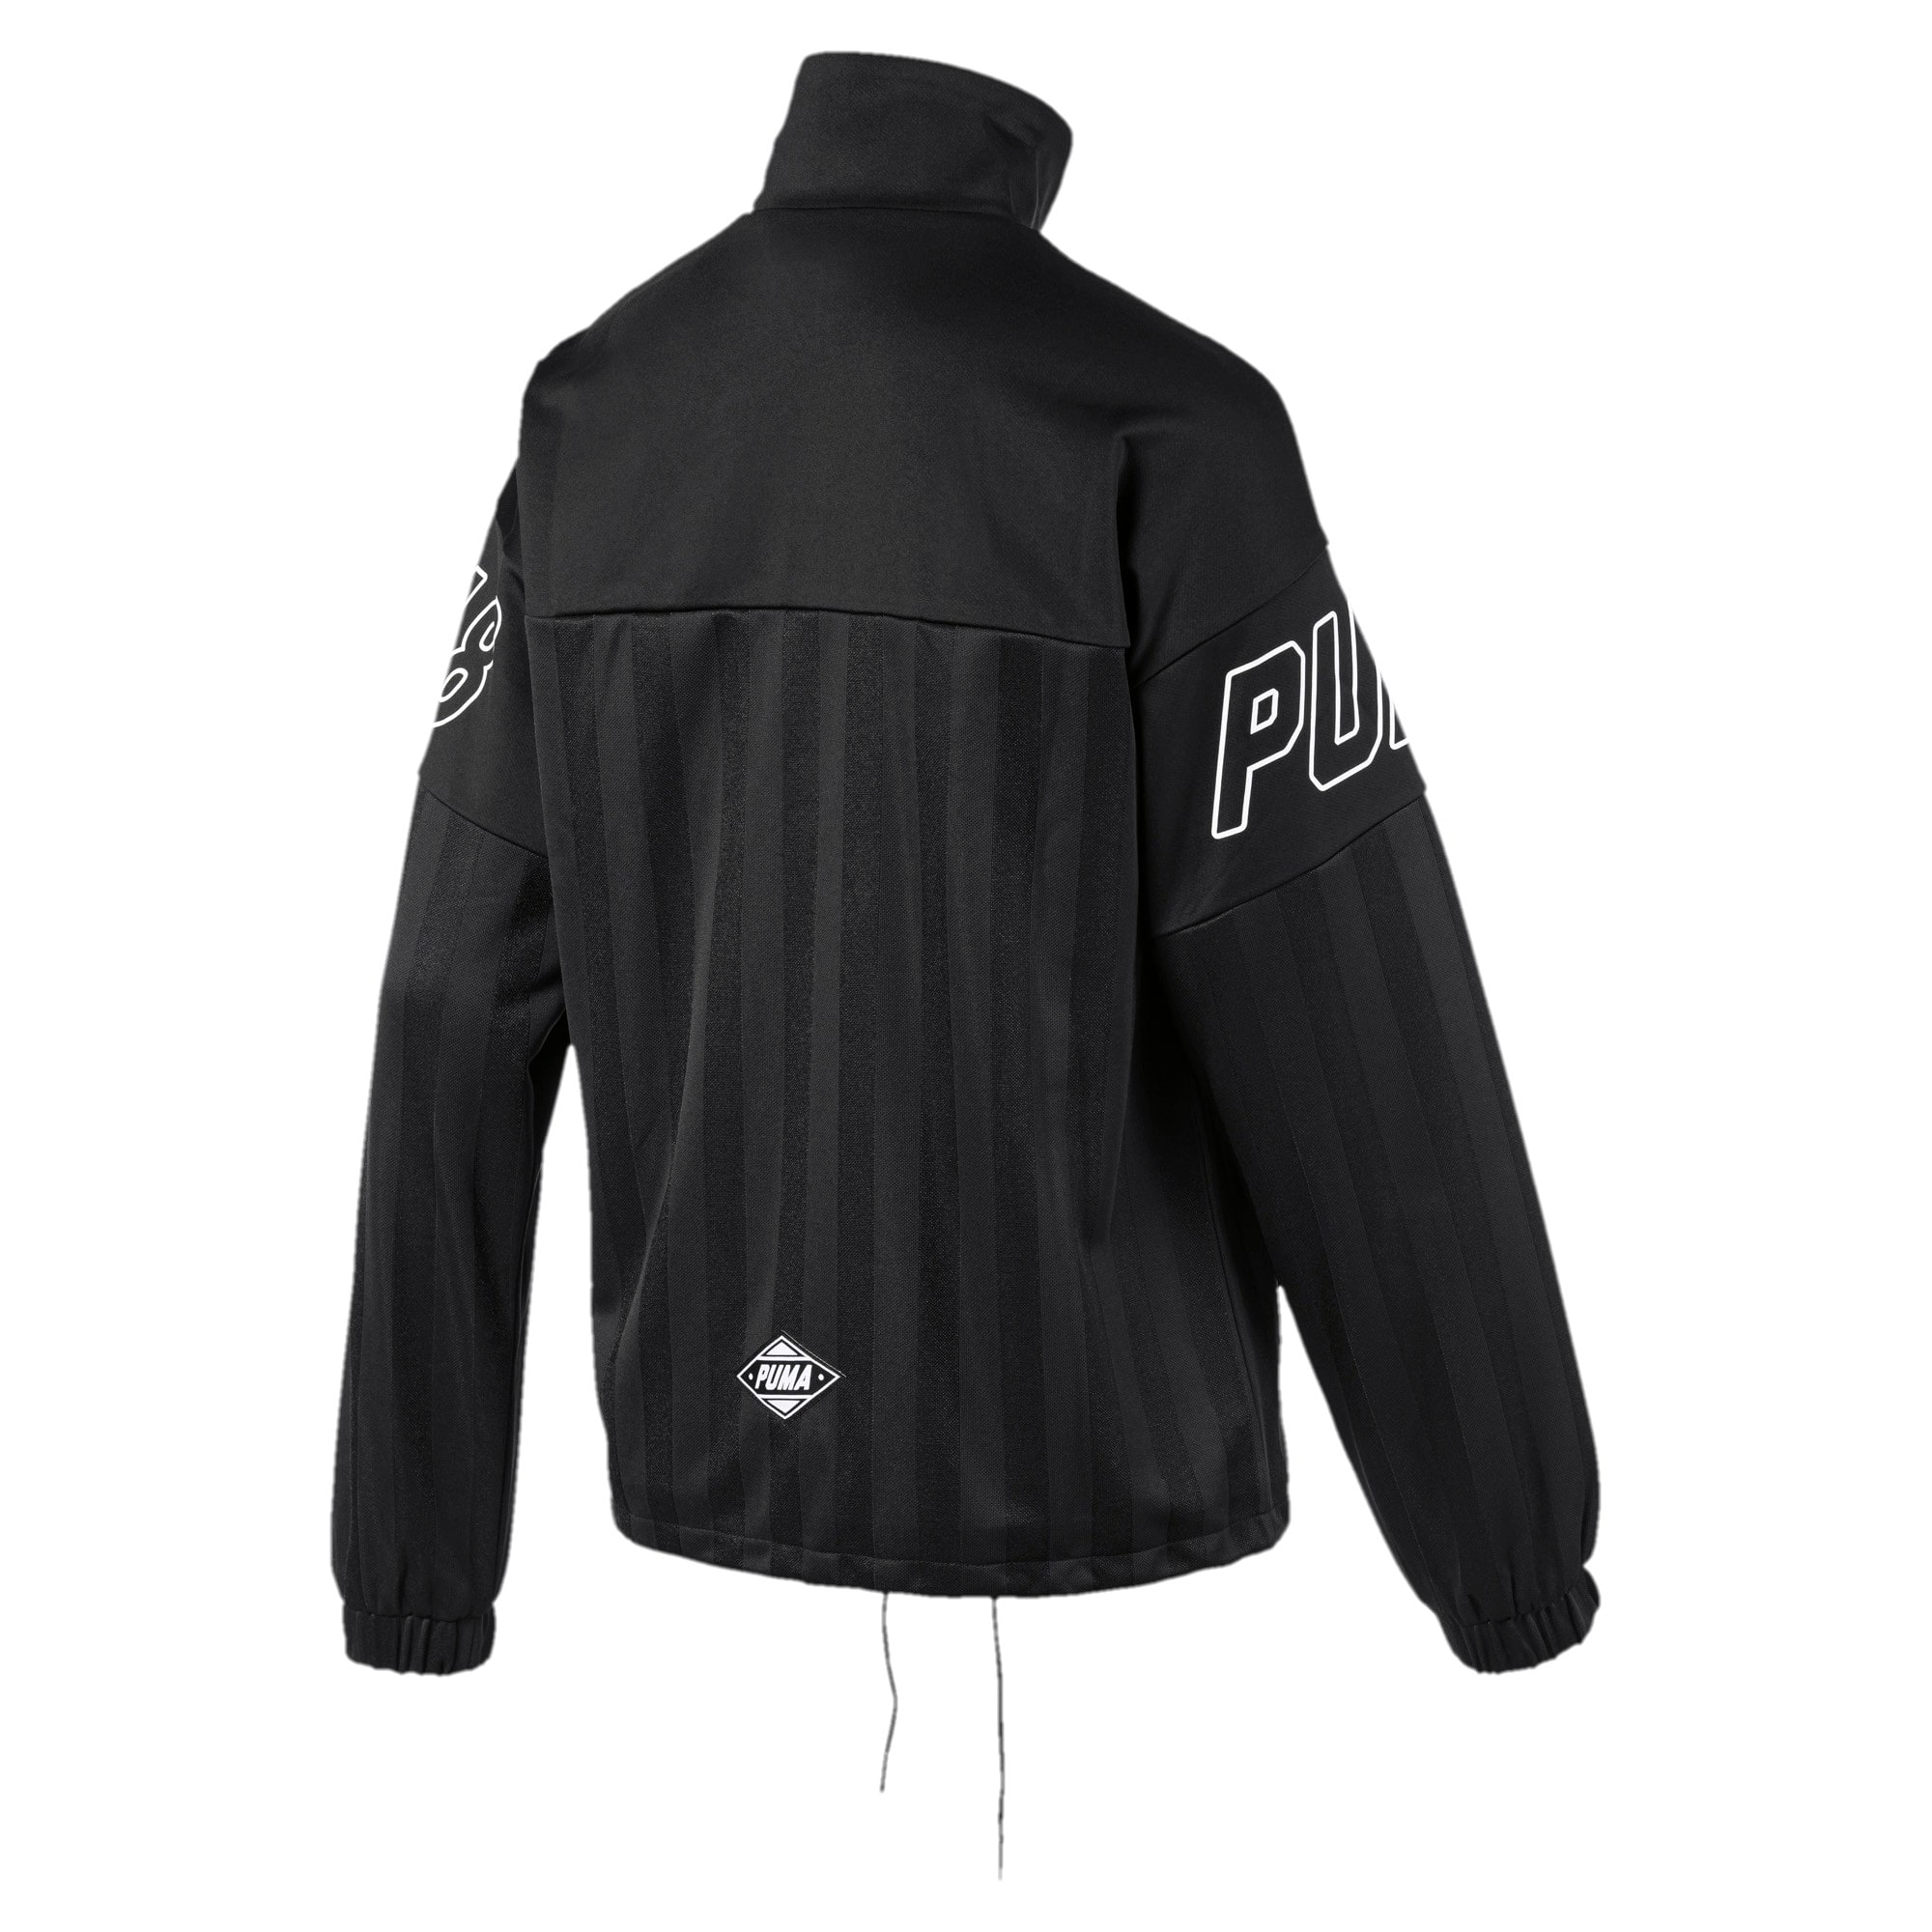 Thumbnail 5 of luXTG Jacquard Women's Track Jacket, Puma Black, medium